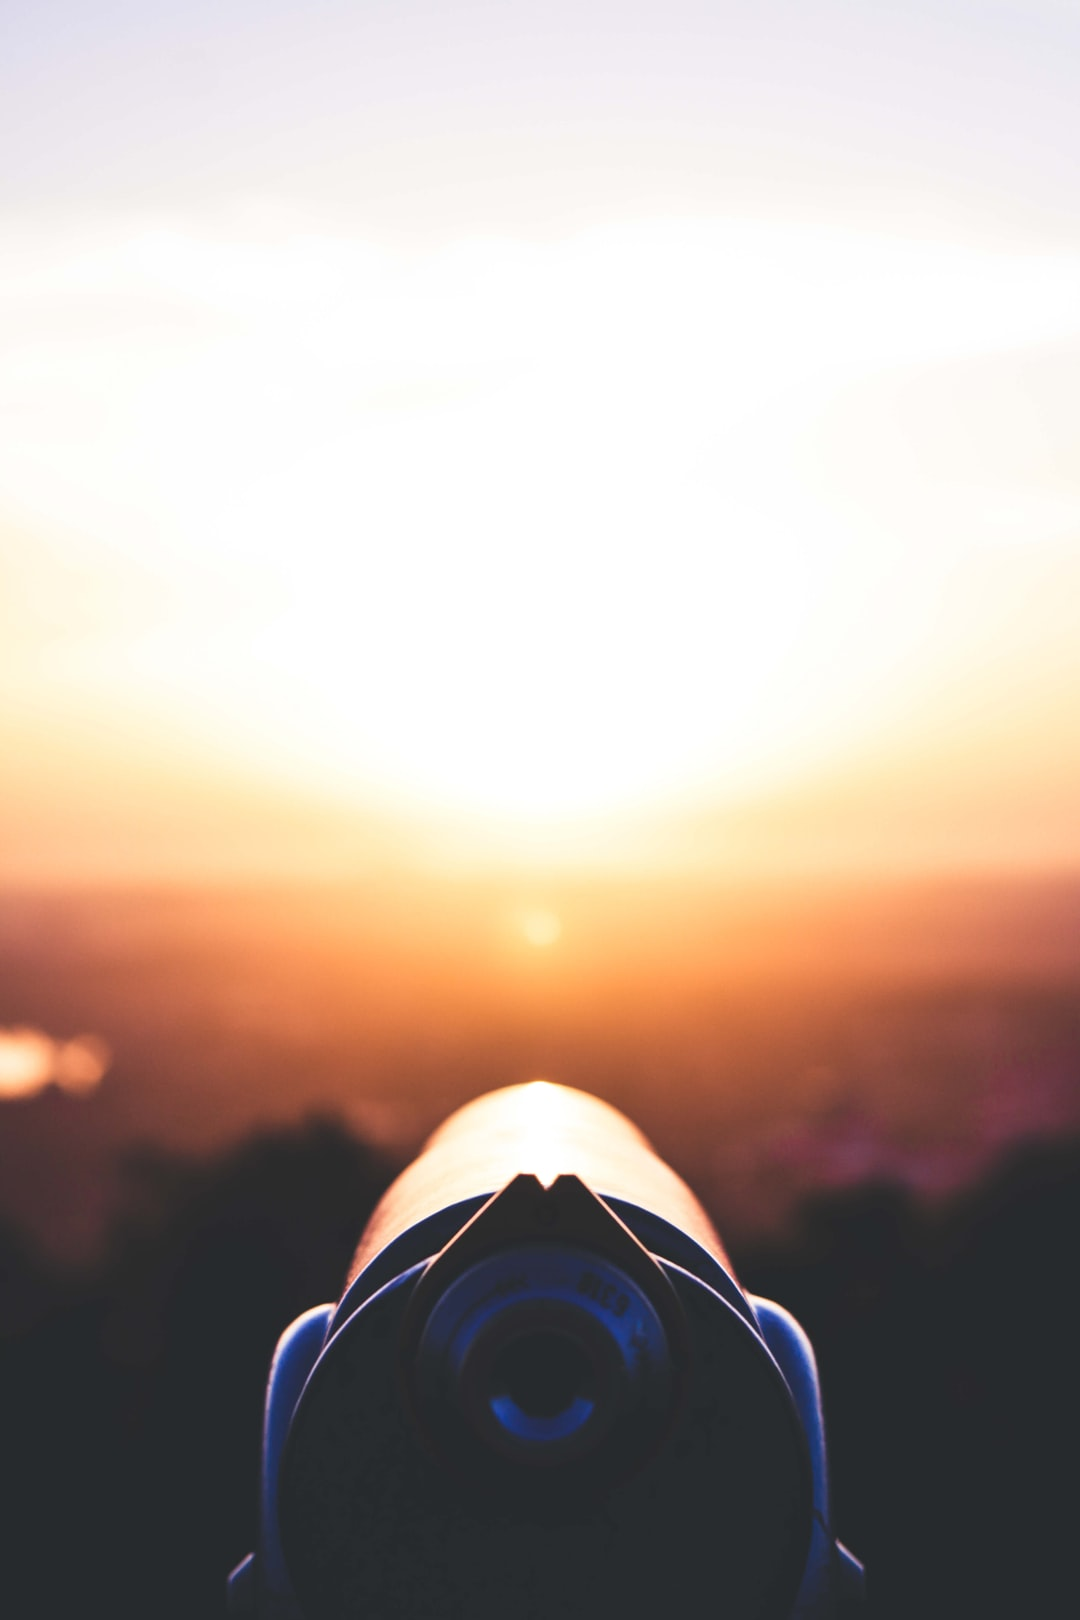 Everyone has a different perspective on life, but is your perspective choosing to find joy and see joy, because joy is out there, you just need to open your eyes